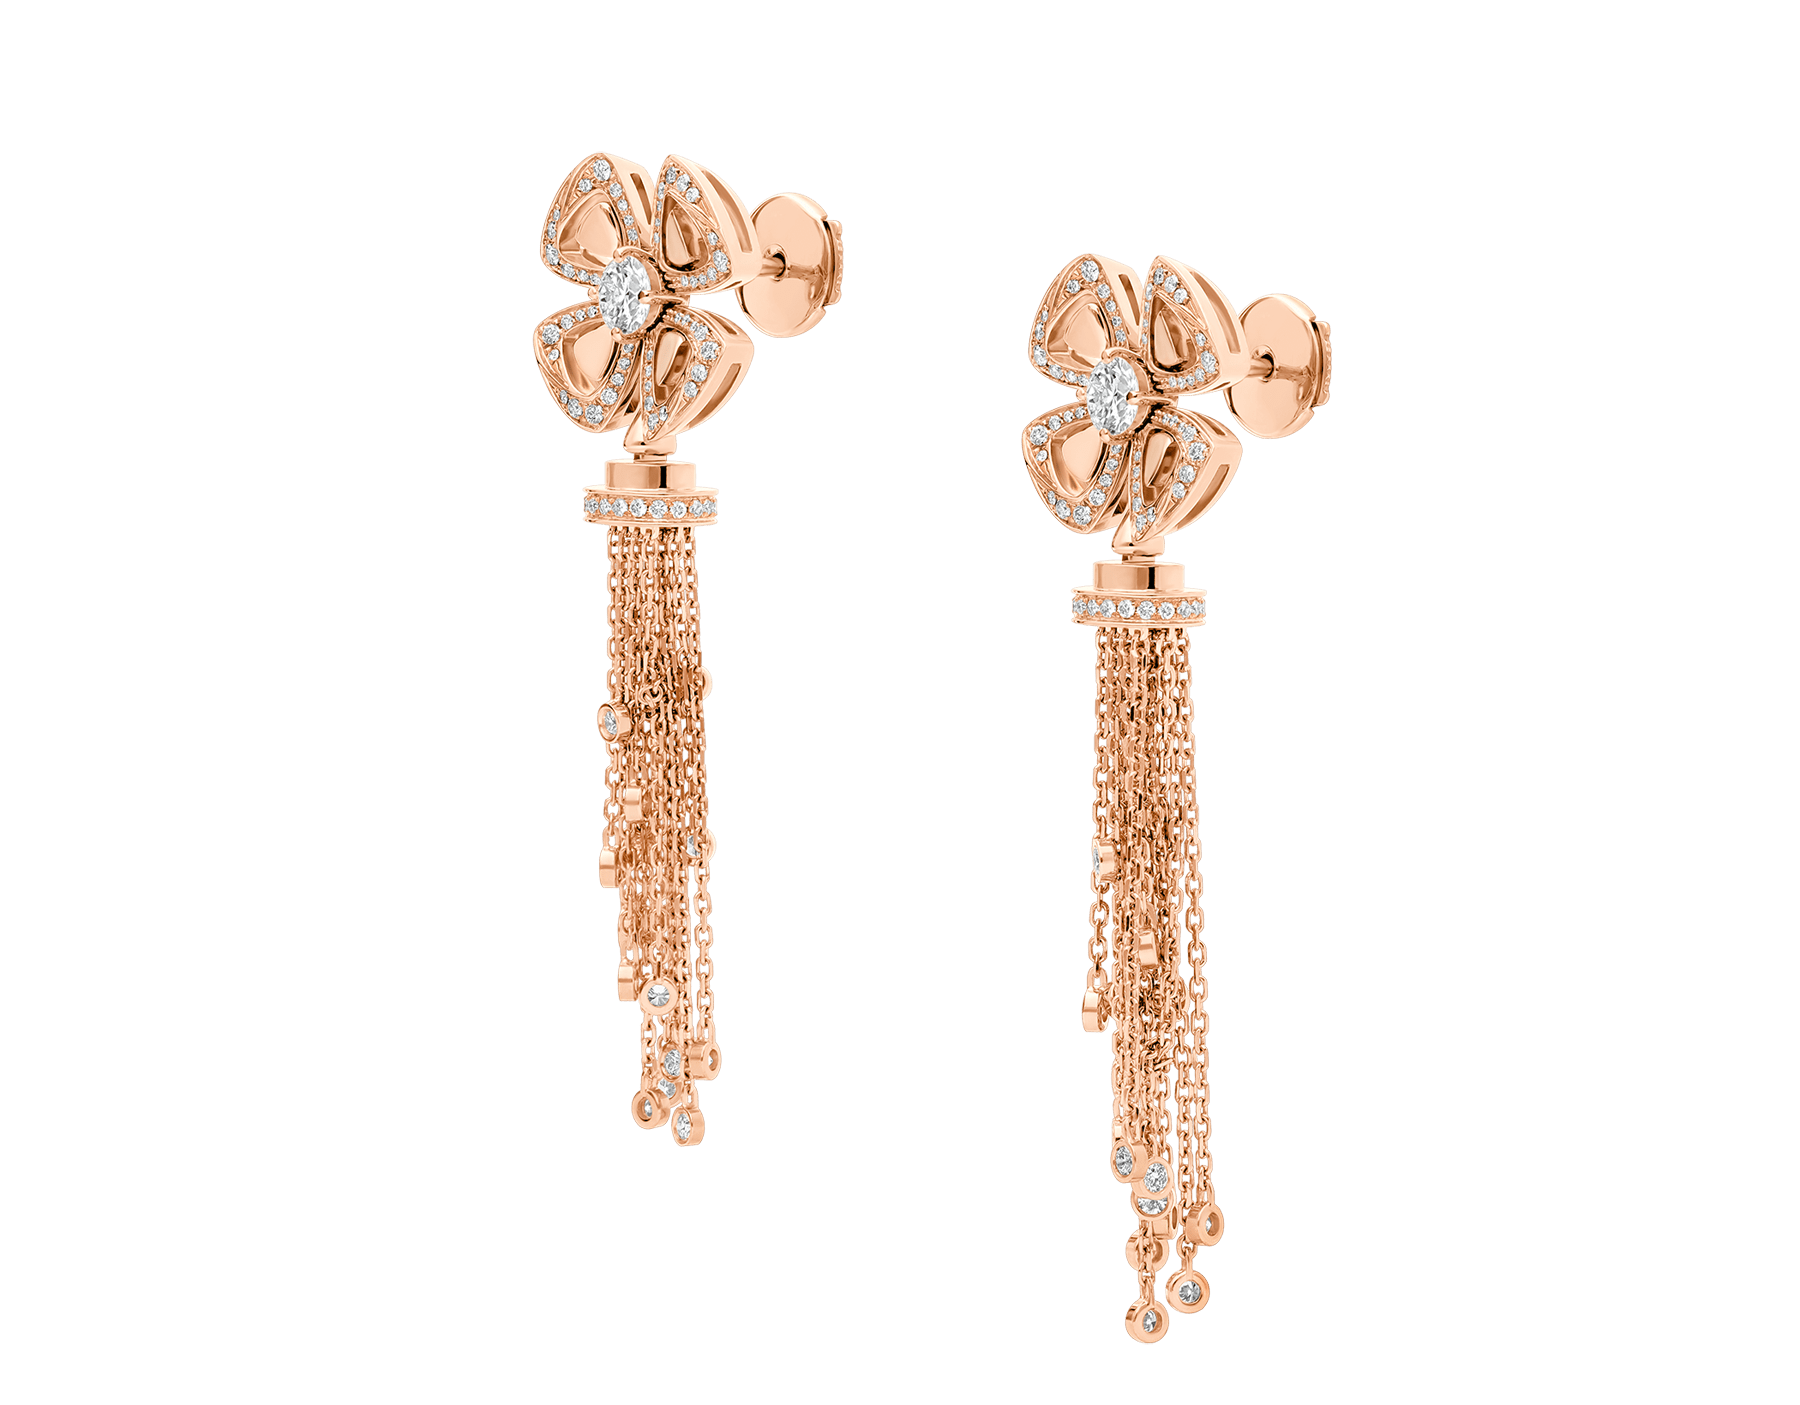 Fiorever 18 kt rose gold pendant earring, set with round brilliant-cut diamonds and pavé diamonds. 357322 image 2